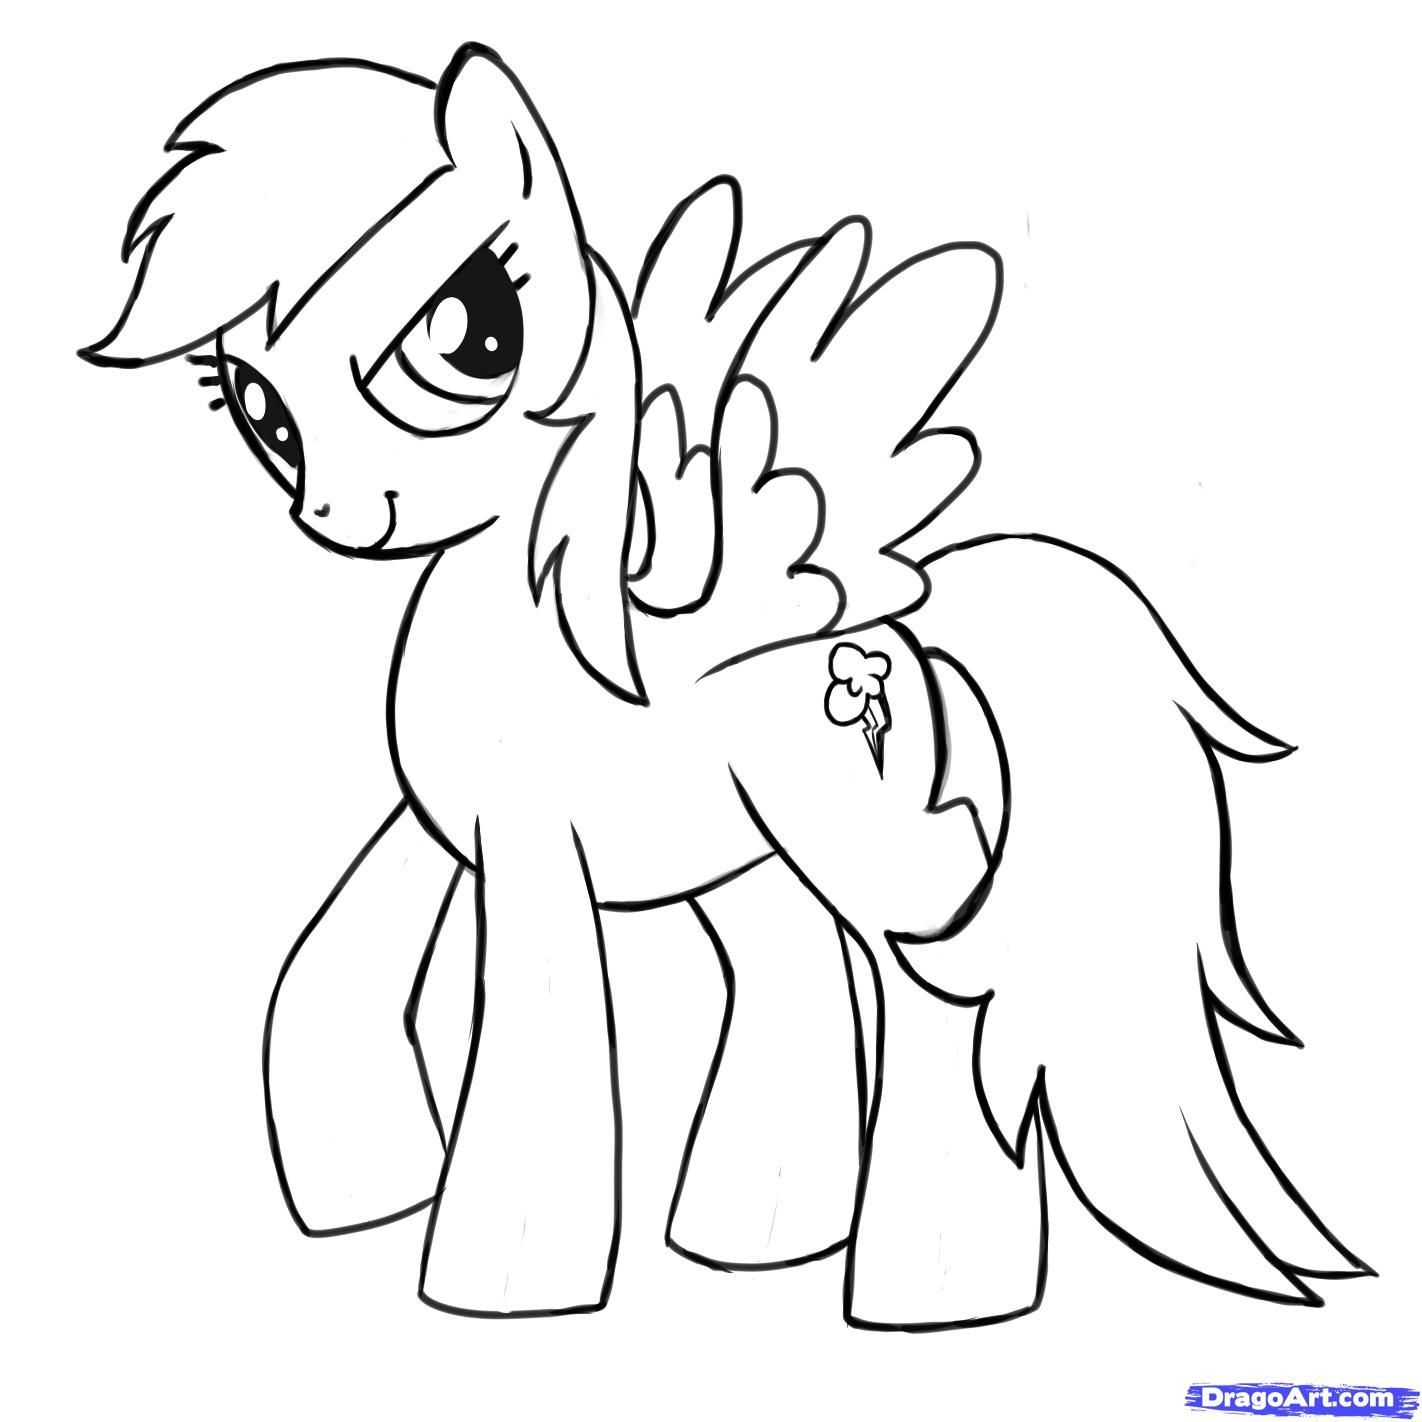 How To Draw Rainbow Dash My Little Pony Friendship Is Magic By